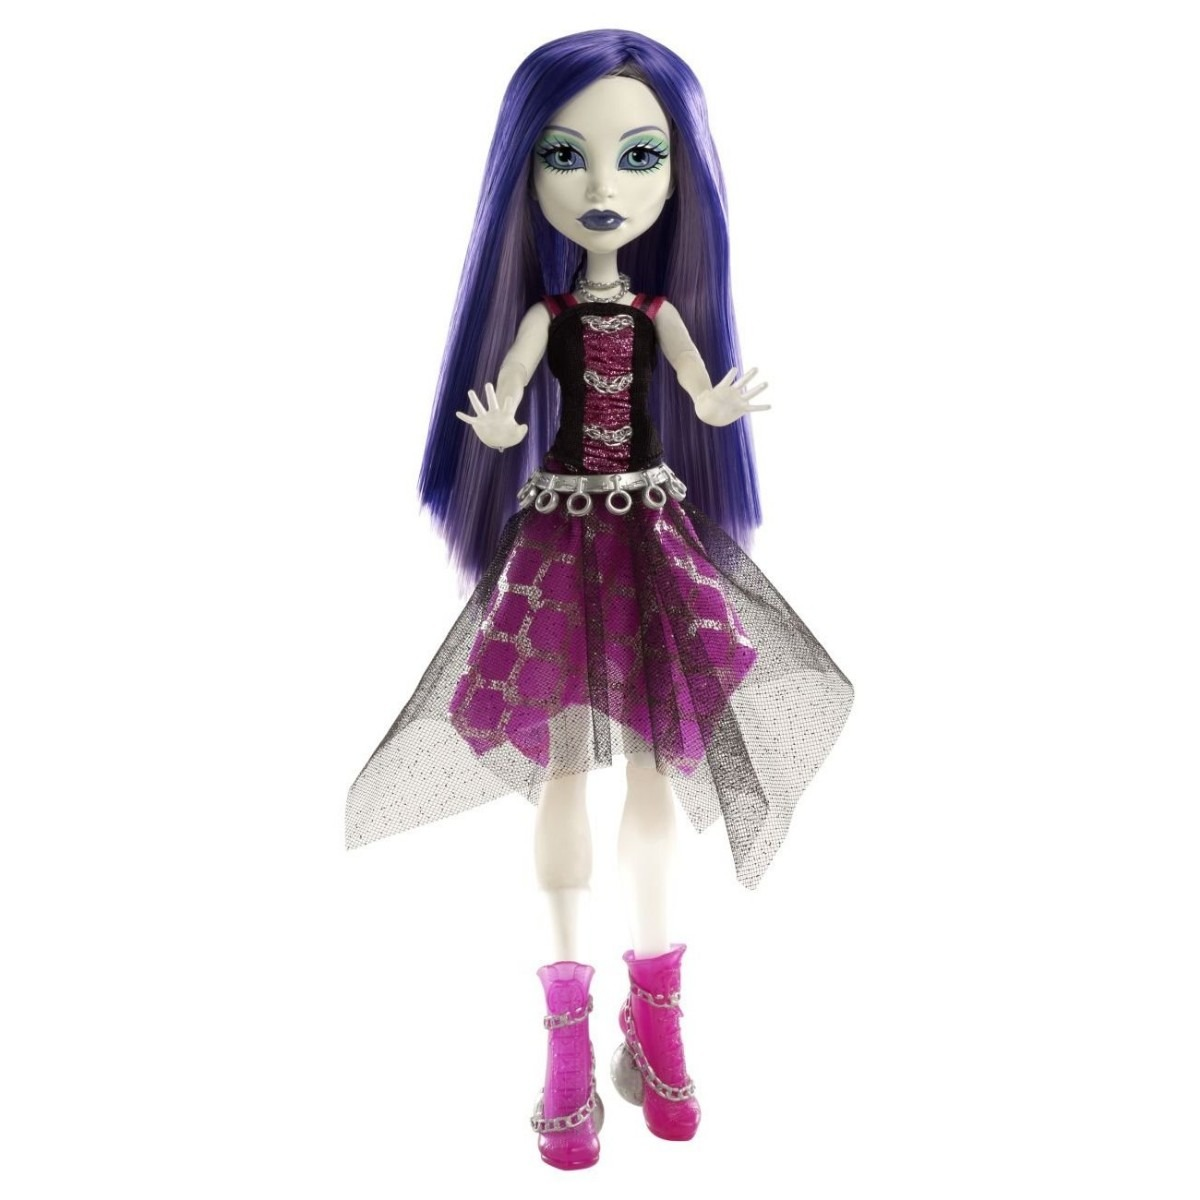 Going to SDCC this year felt different. No Monster High releases to marvel over and take tons of pics of. Not awesome Mattel employees to chat with and share Monster stories with.